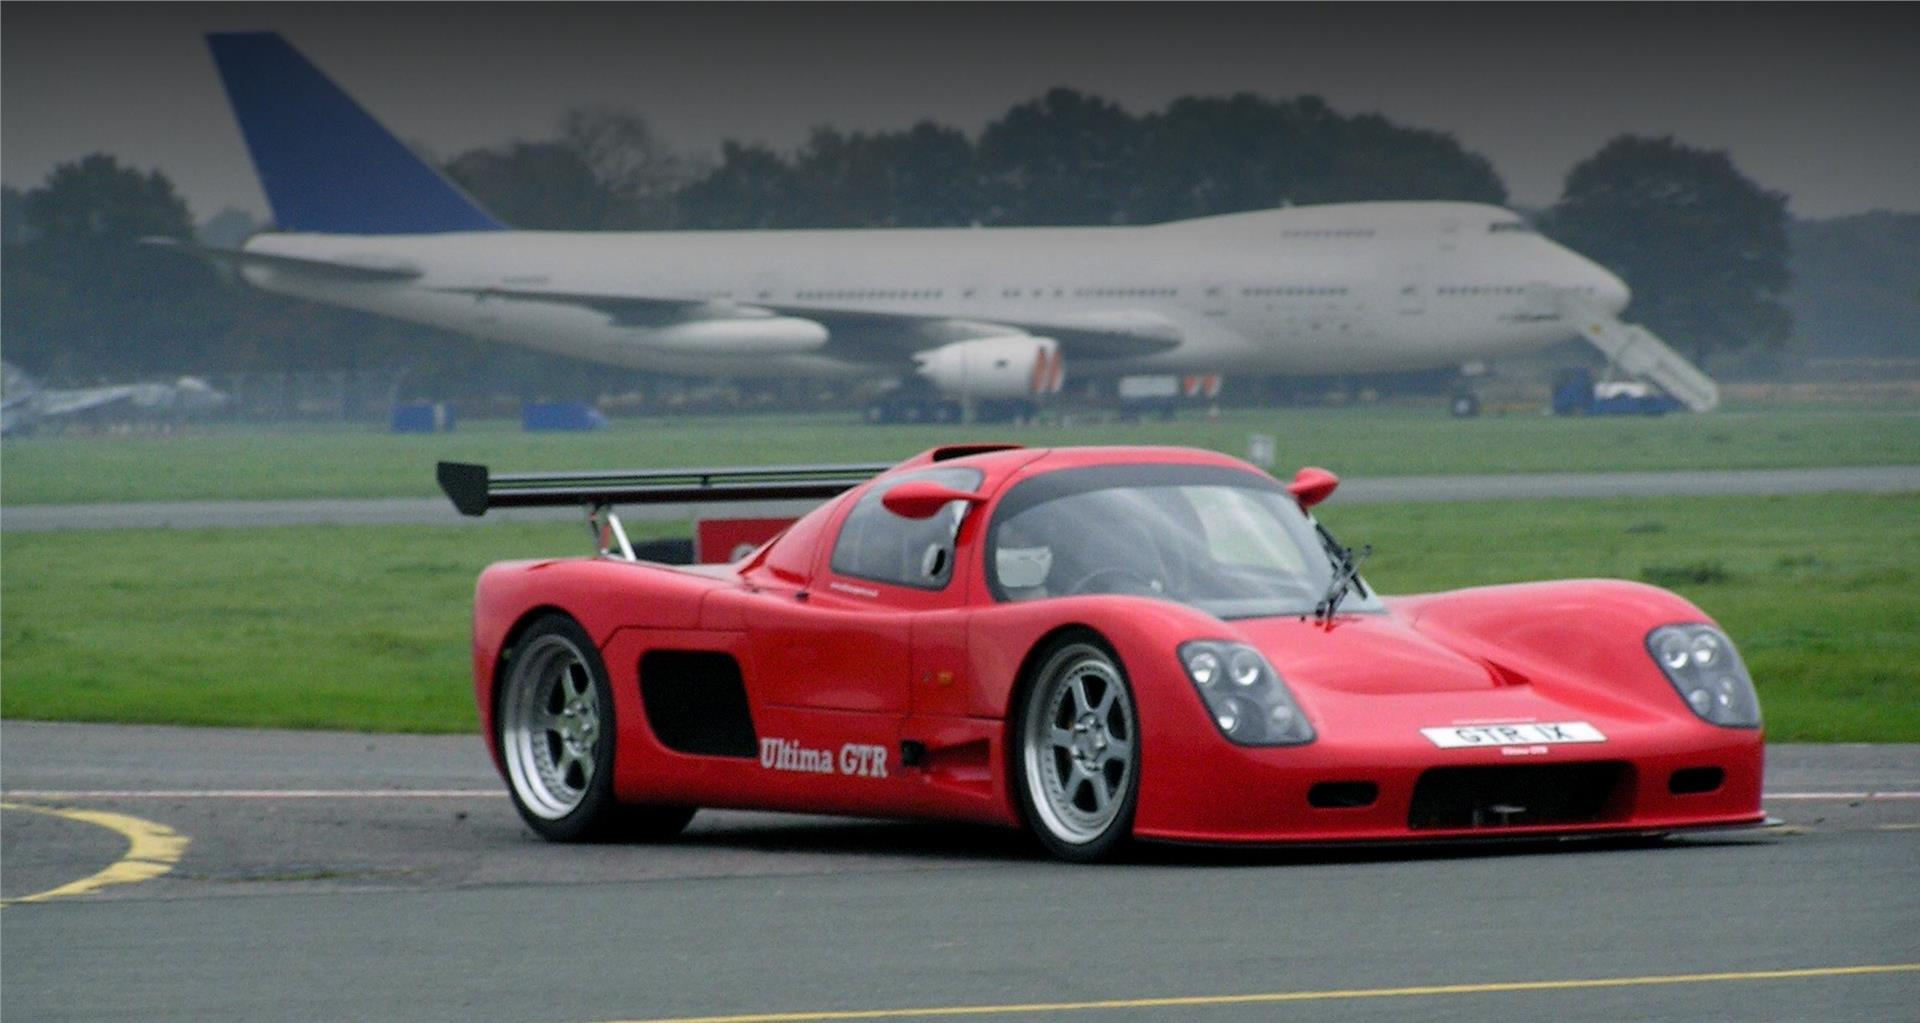 894a8310a4 Ultima GTR Fastest around the track used by Top Gear